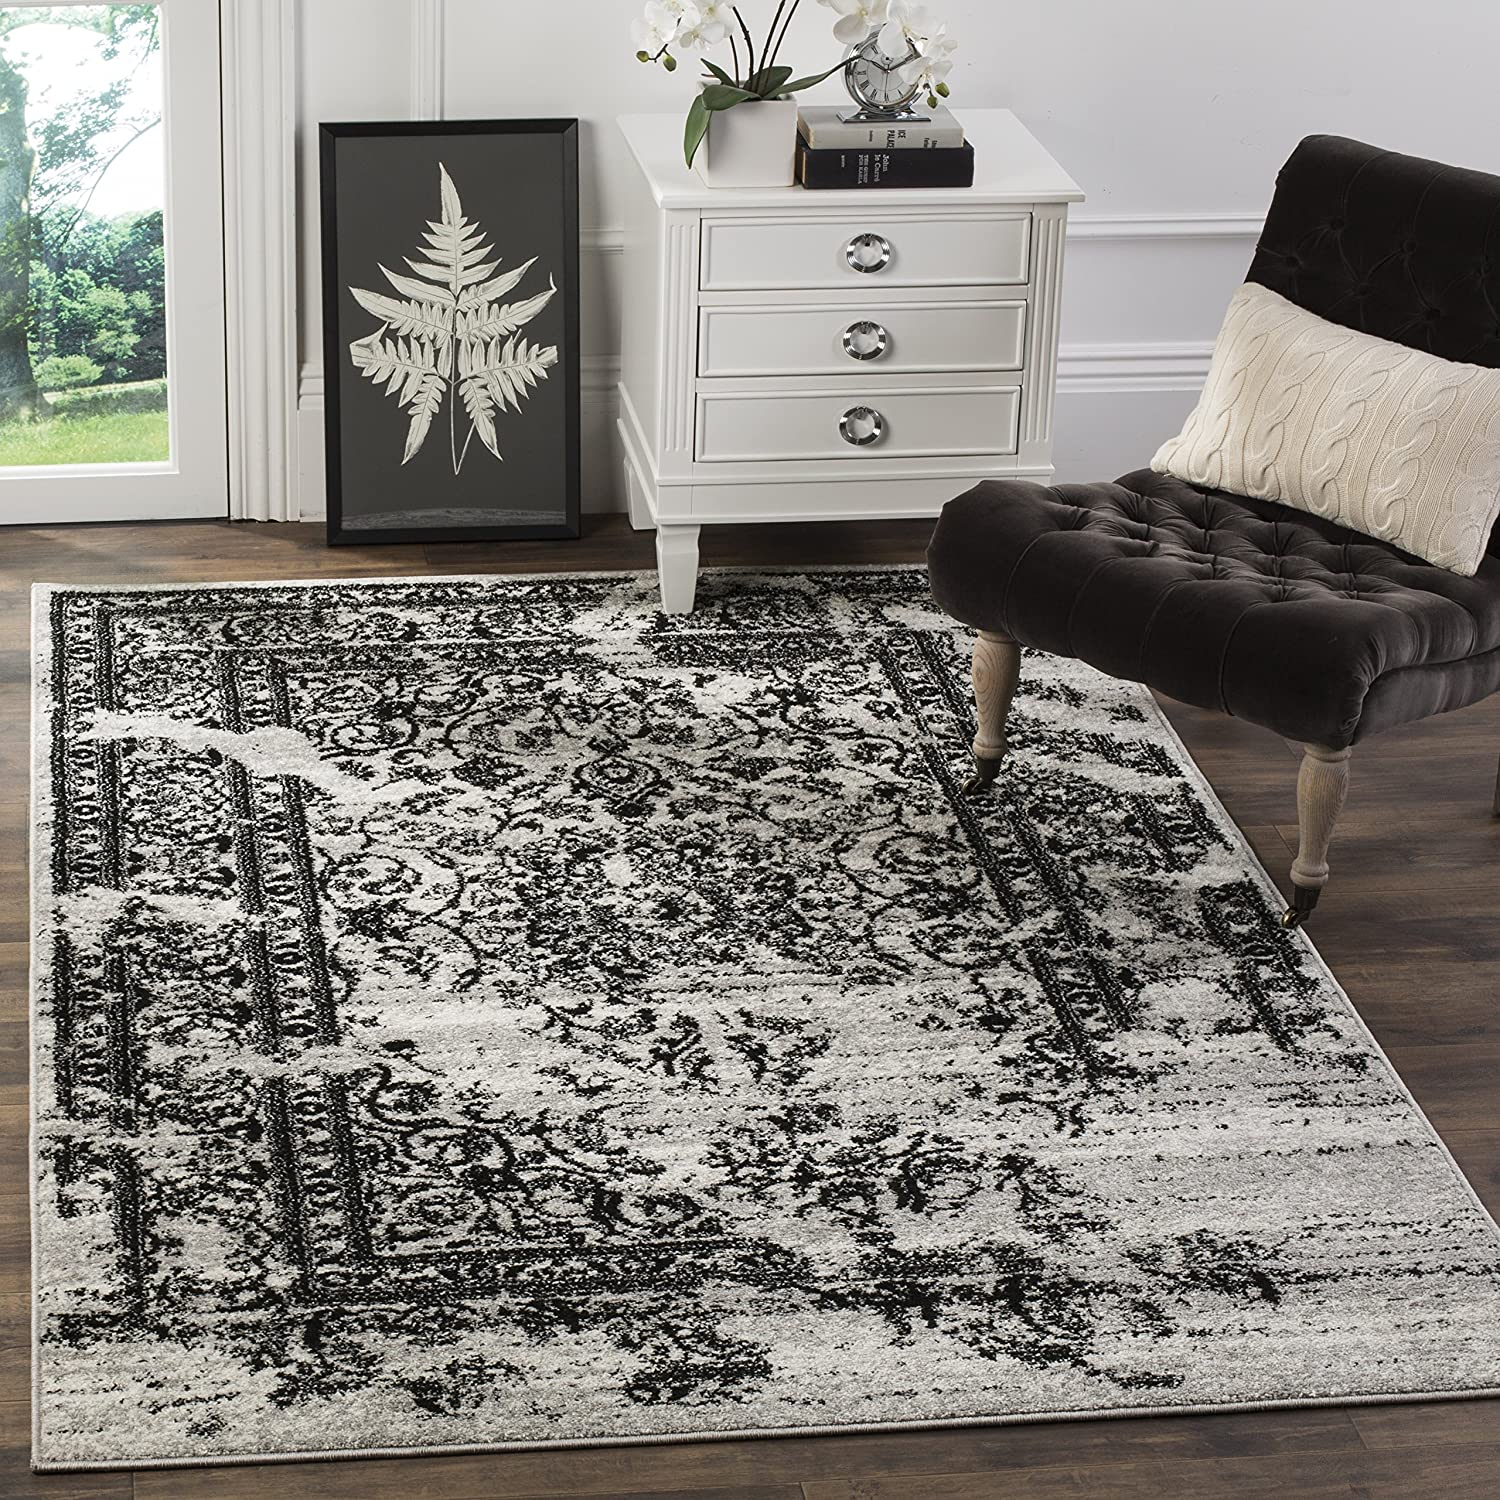 square com modern area plrstyle rug rugs for